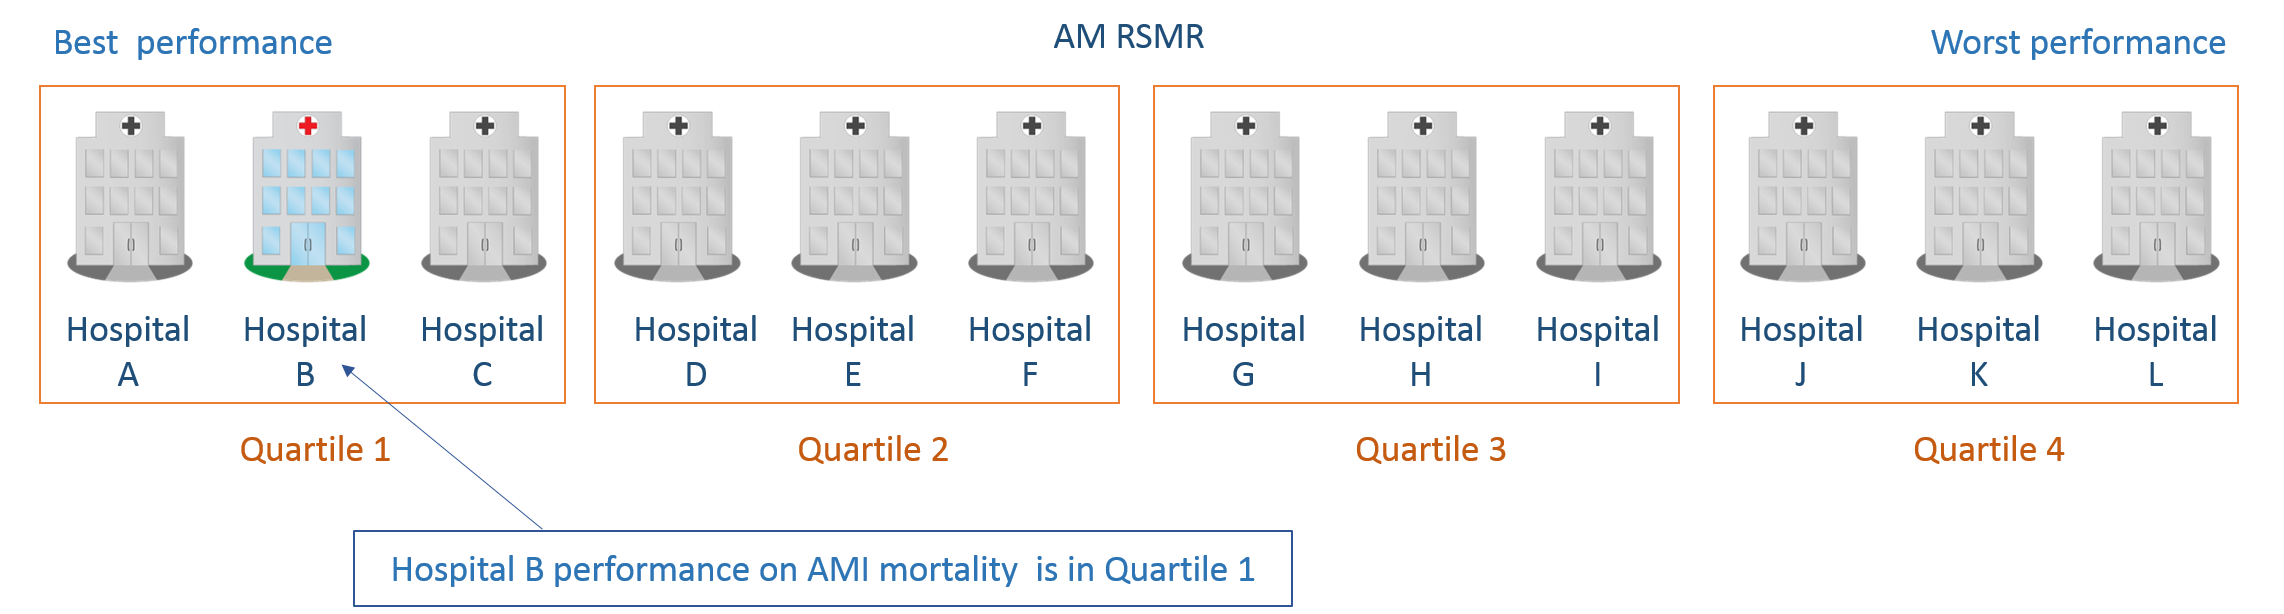 The hospitals are divided into groups based on their ranking